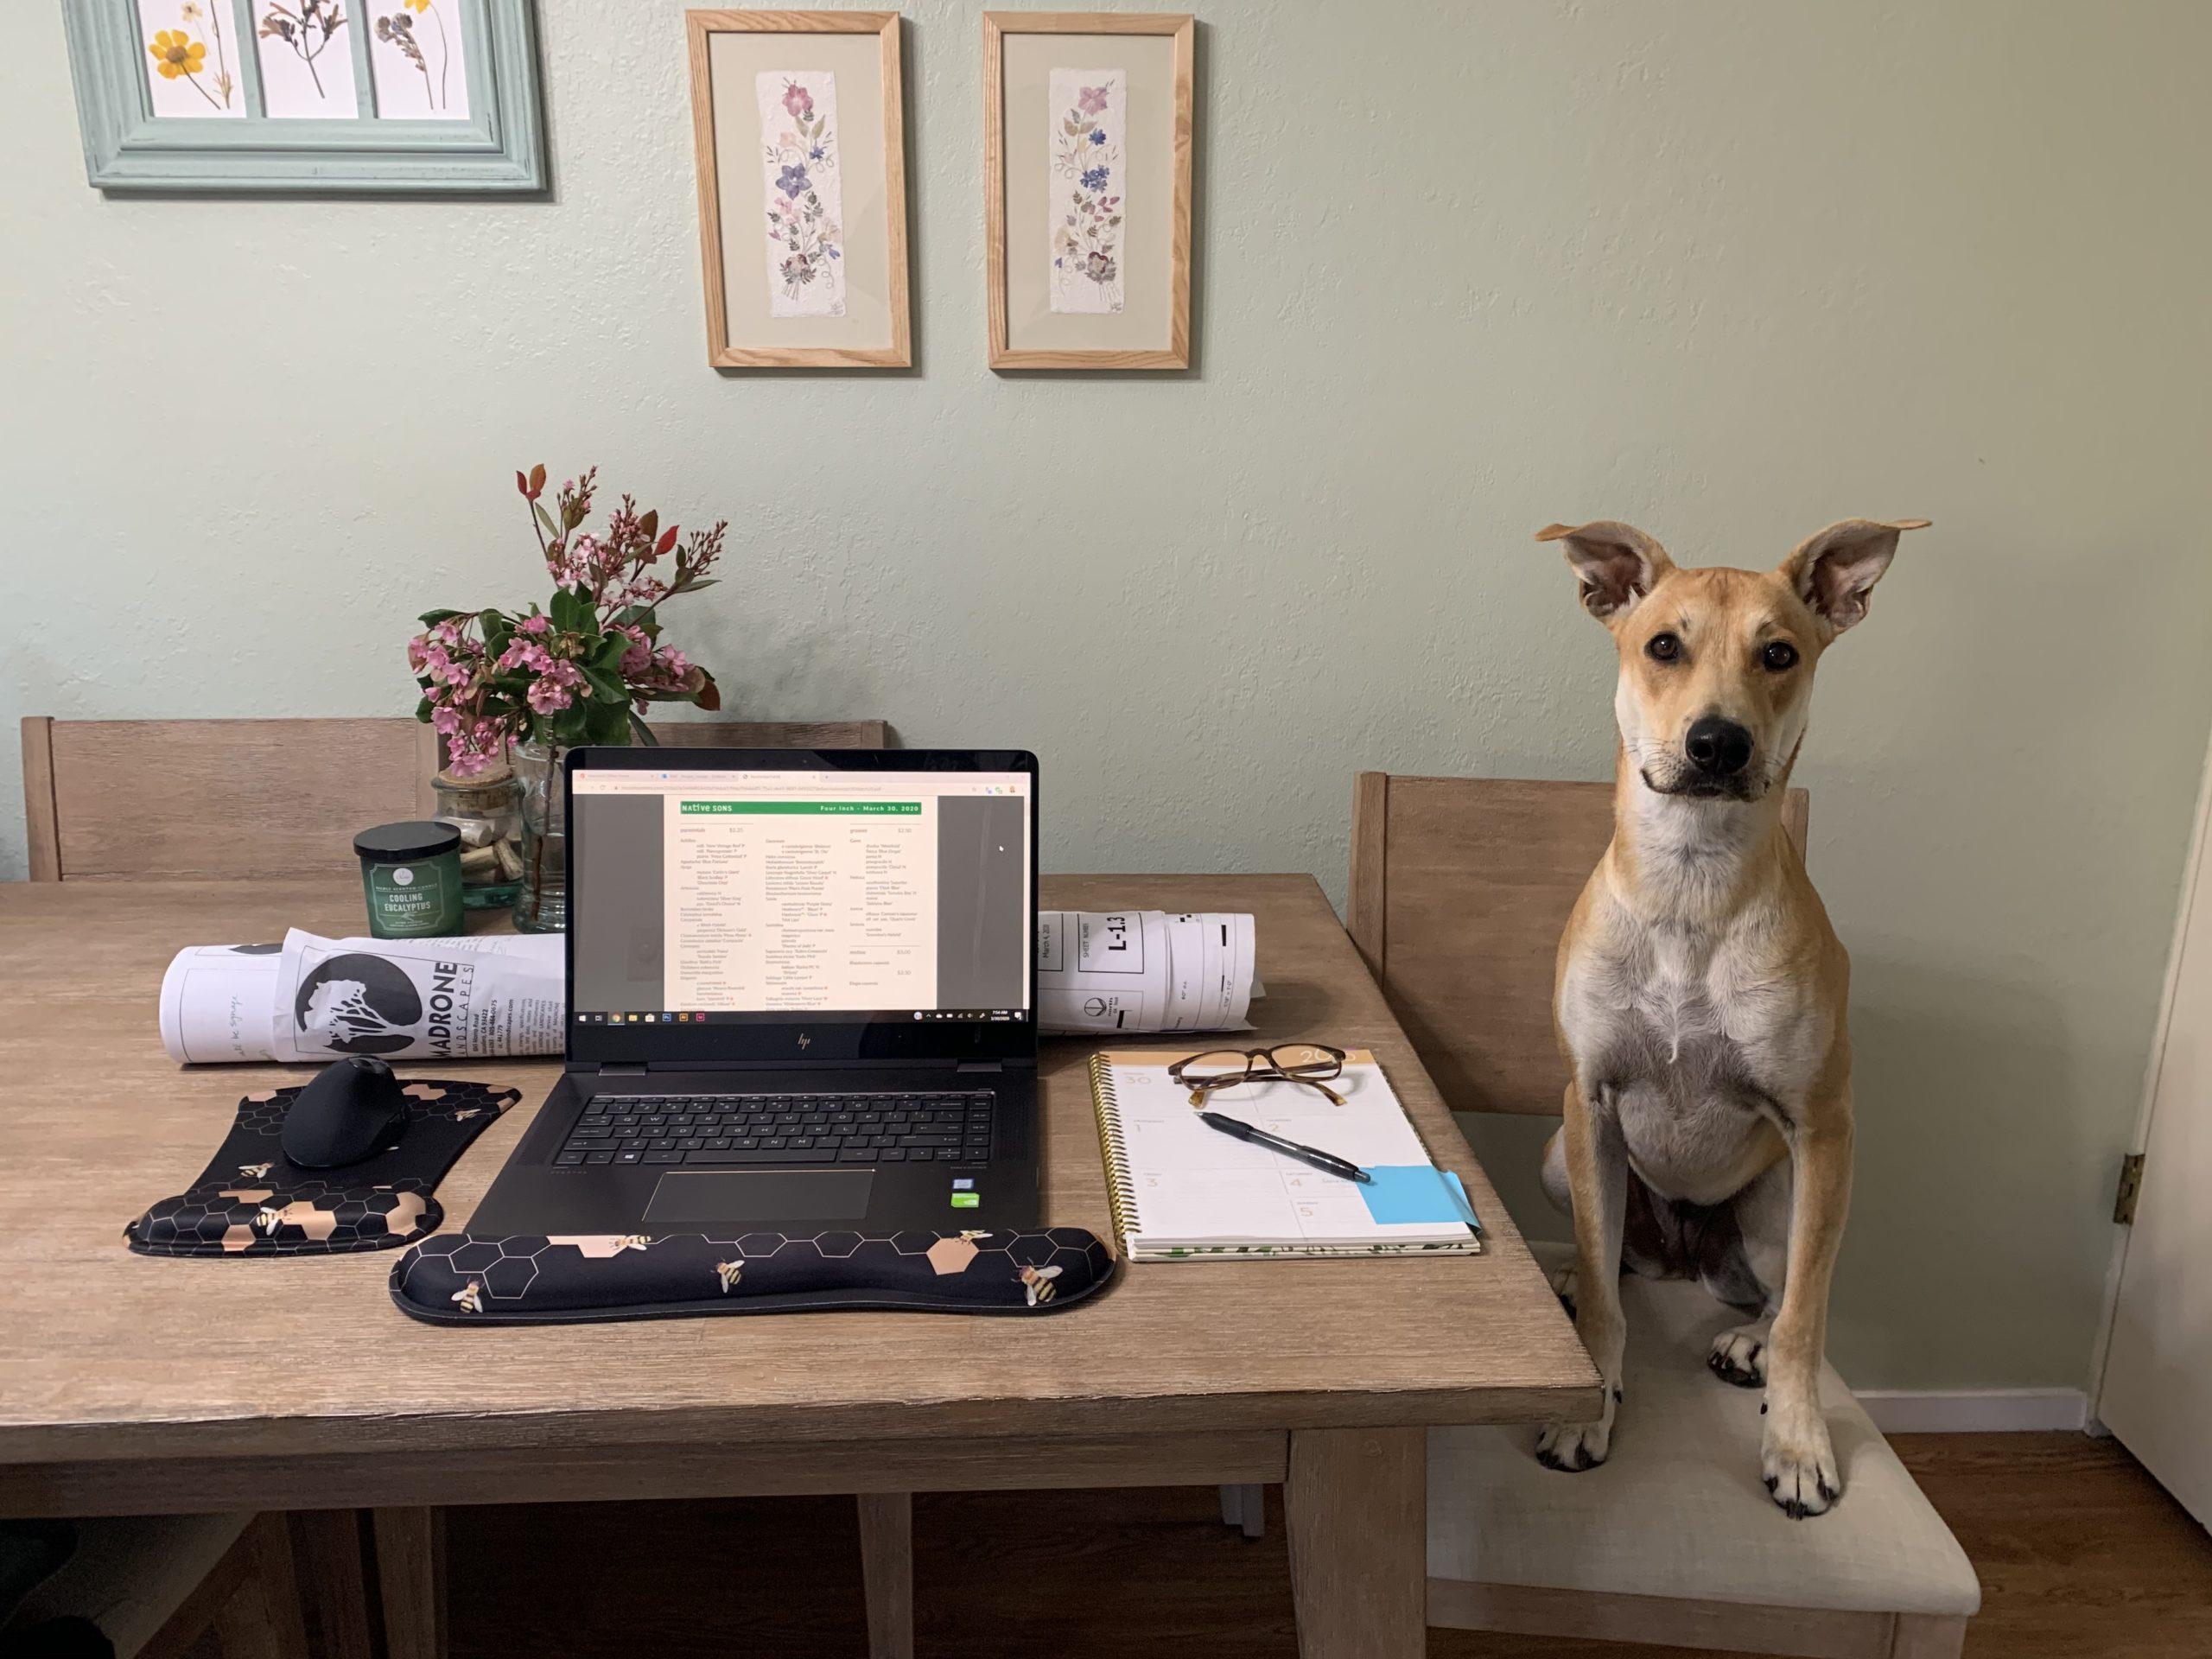 Megan's Workspace feat. Lily the Dog